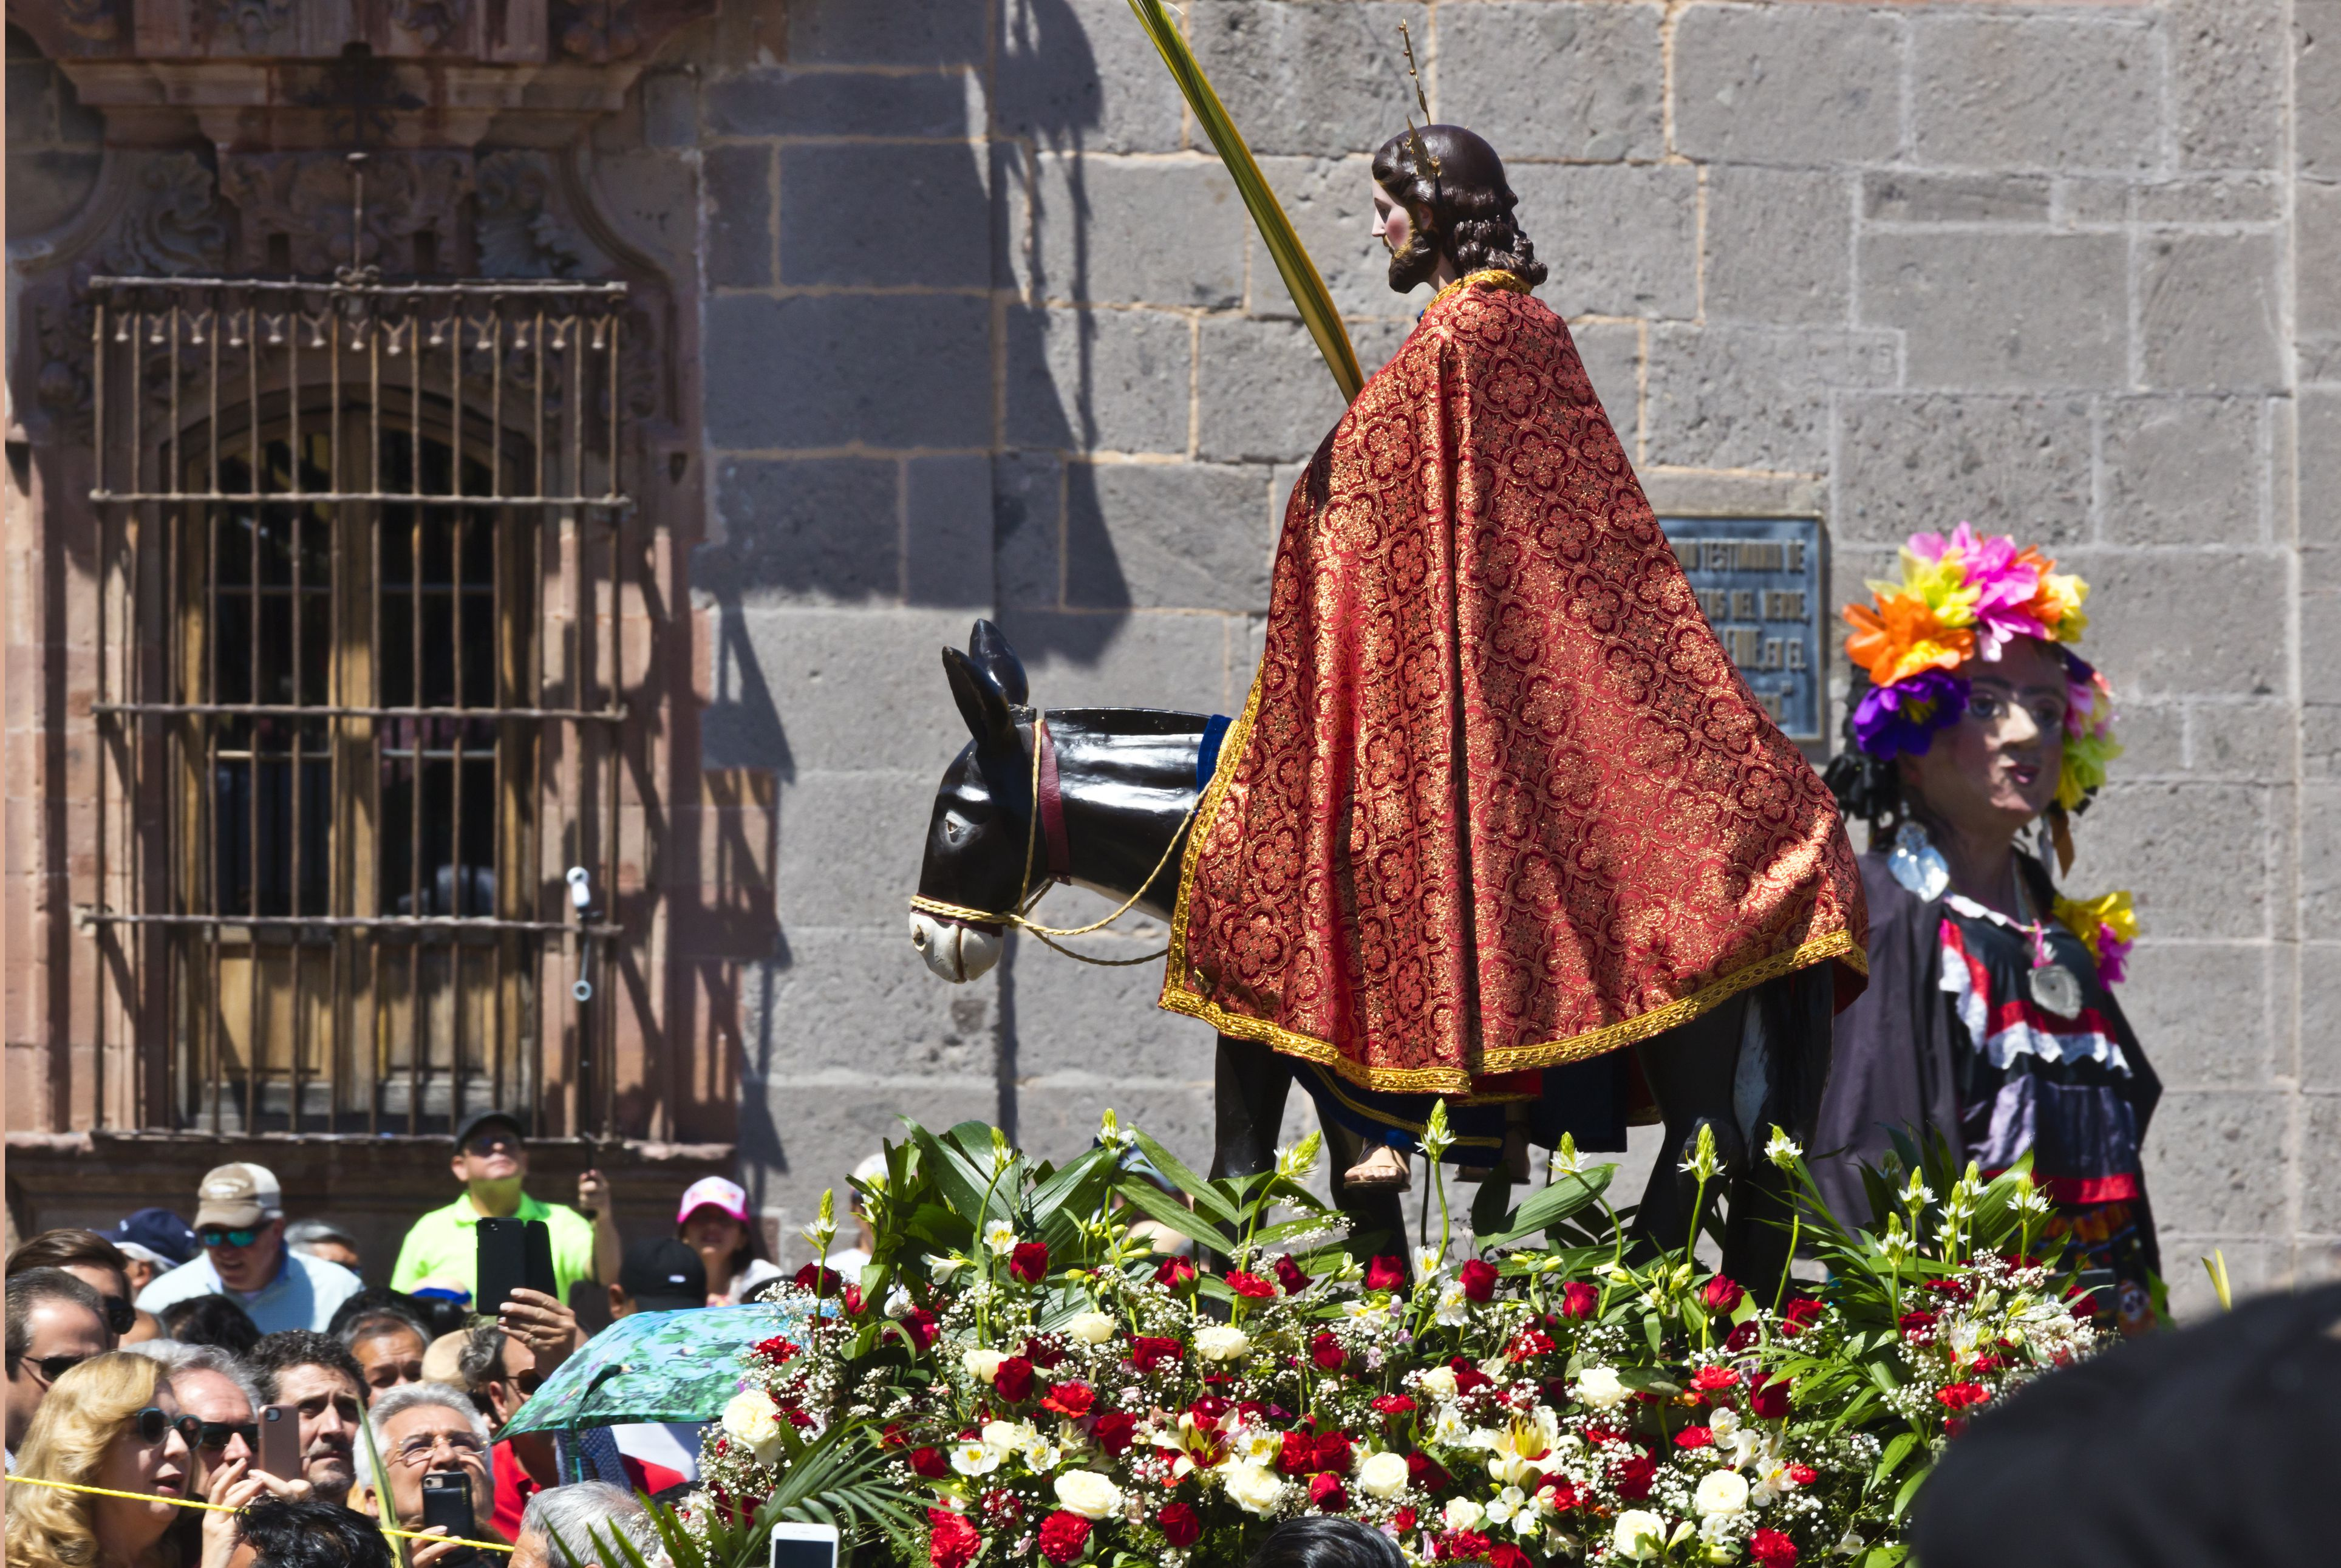 A statue of JESUS CHRIST is carried in the PALM SUNDAY PROCESSION from Parque Juarez to the Jardin - SAN MIGUEL DE ALLENDE, MEXICO